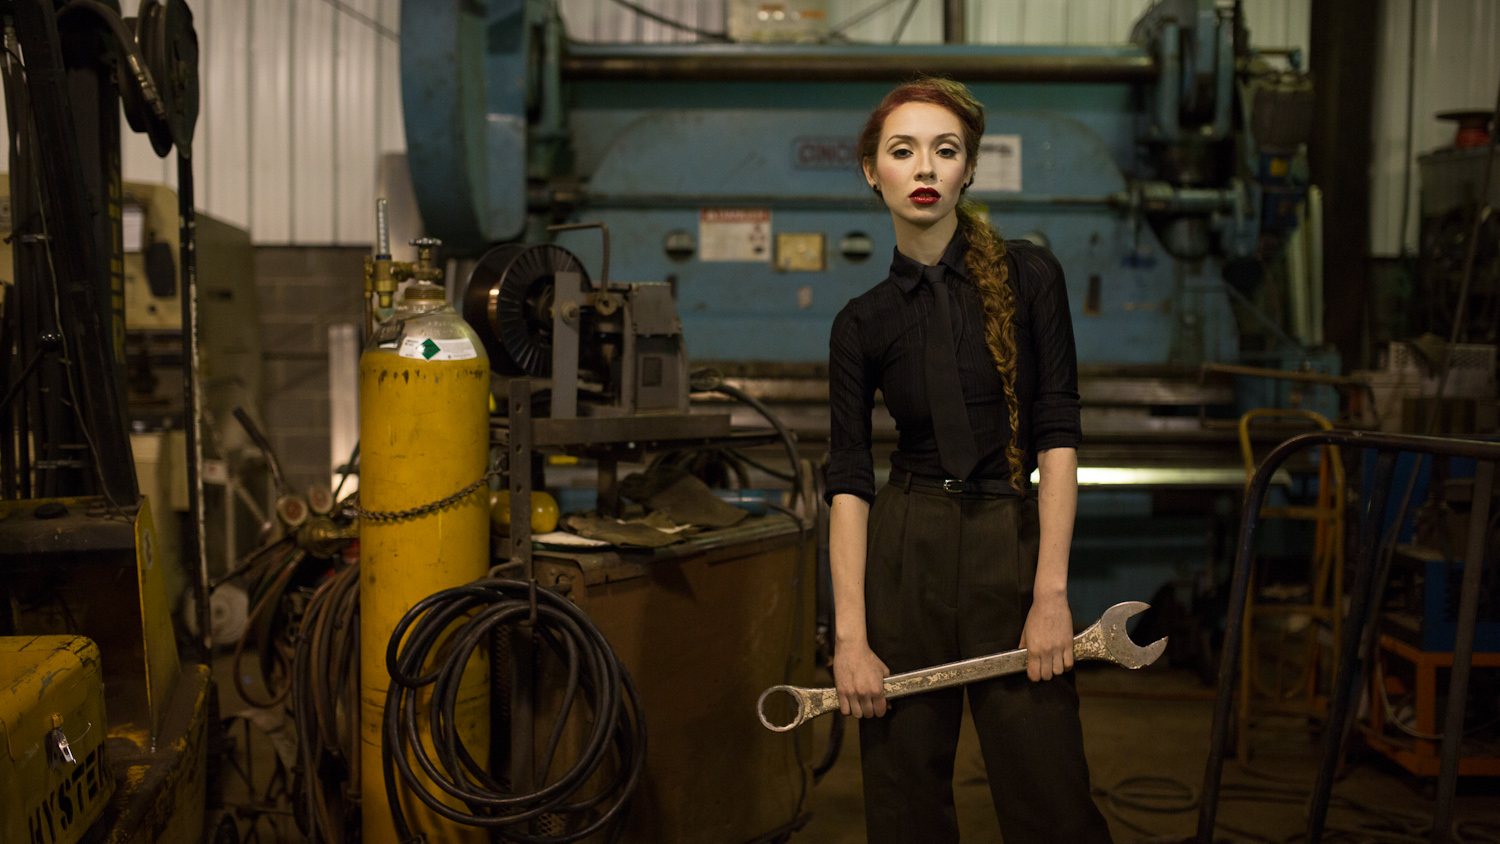 Personal fashion story  factory worker